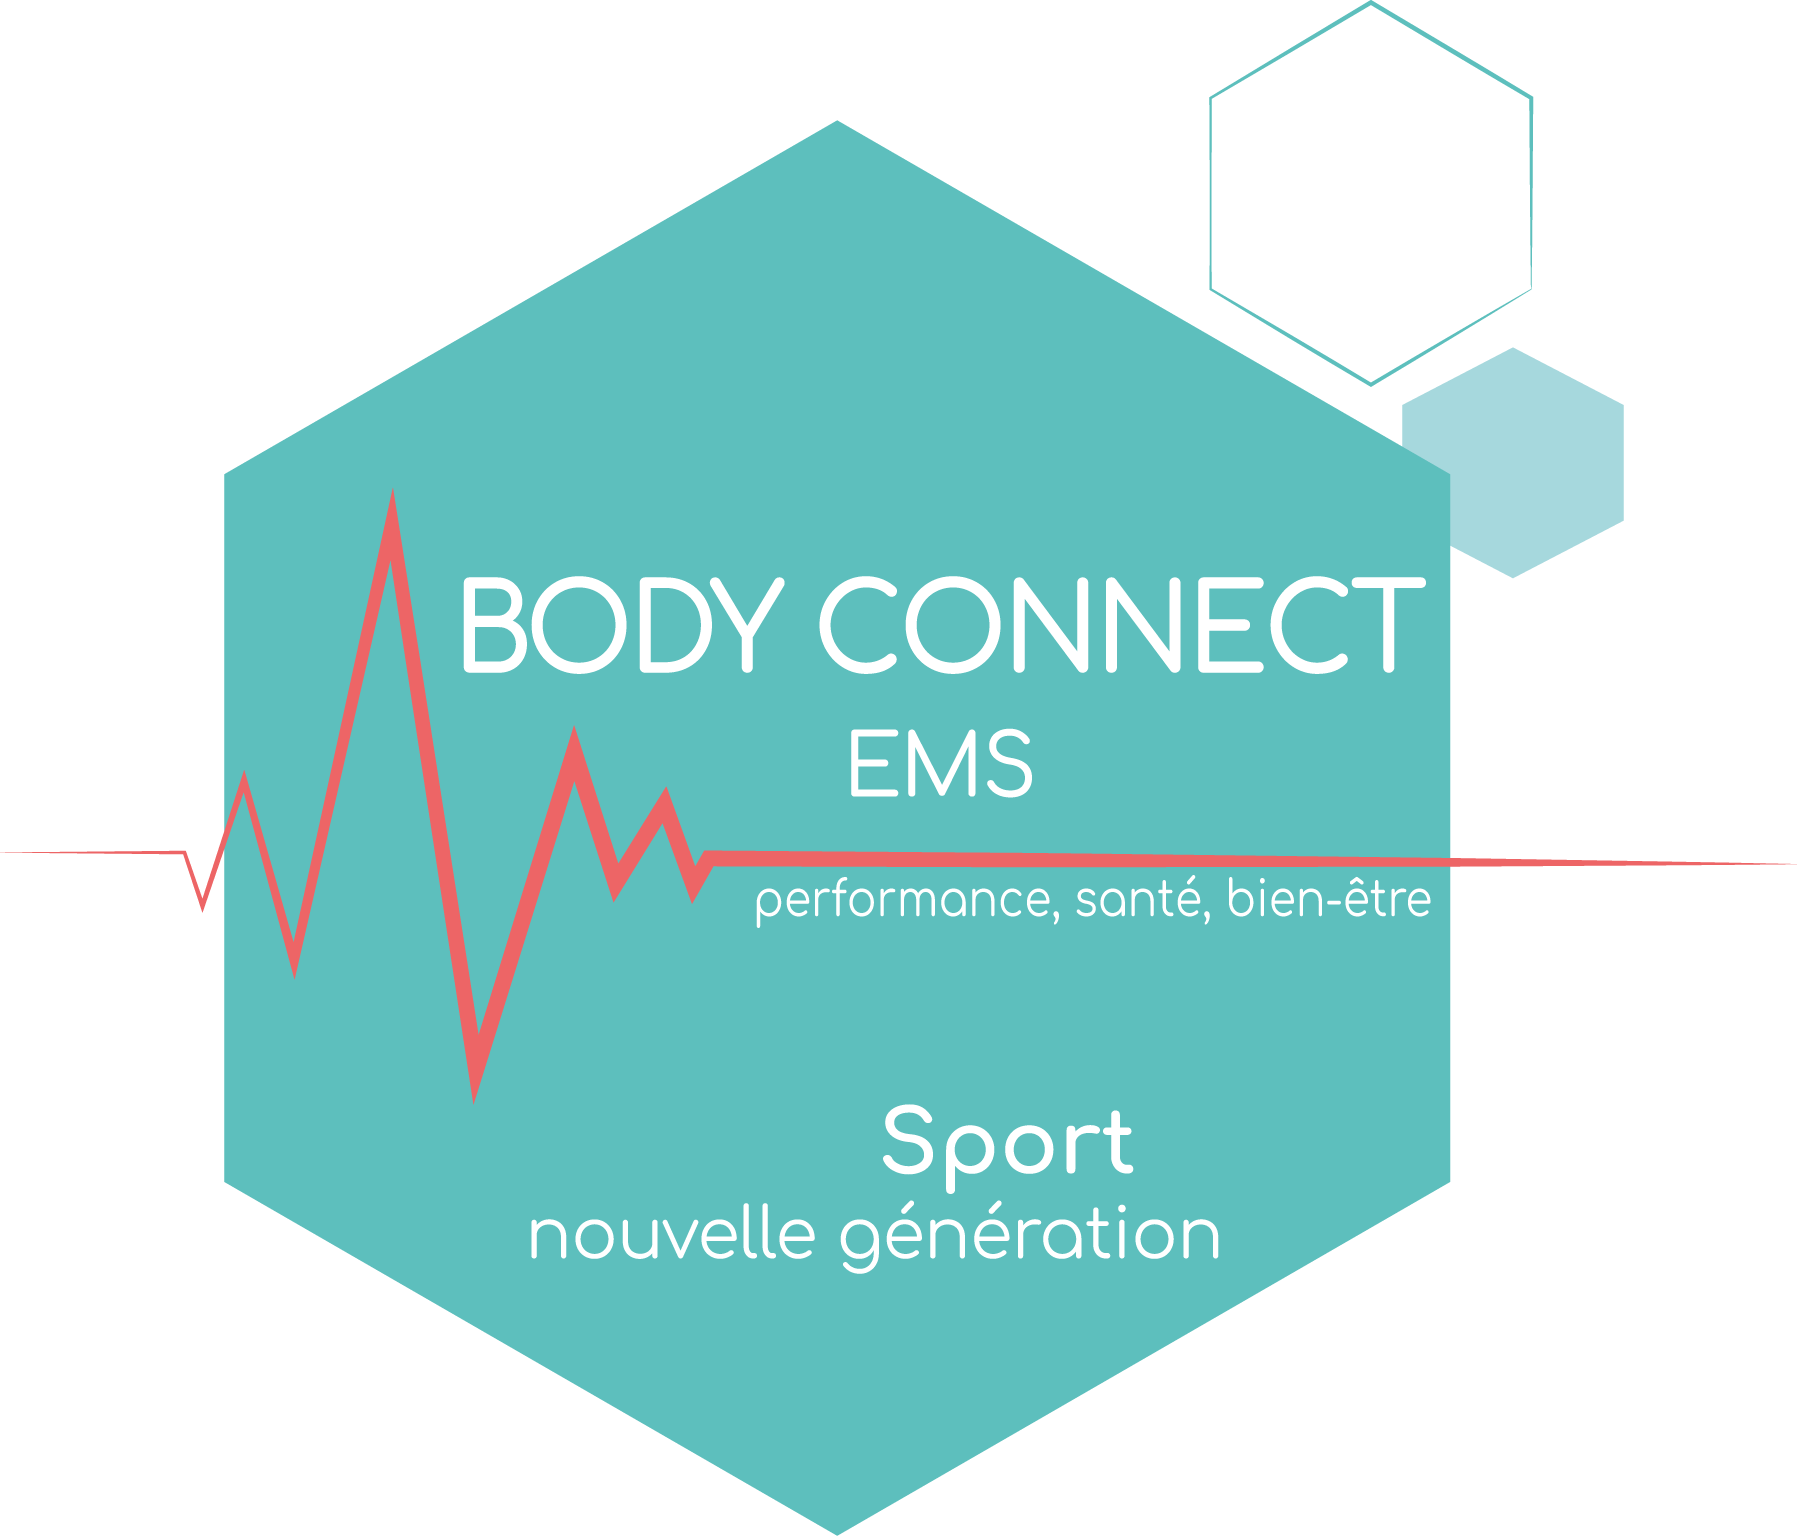 Body Connect-Guylaine Guilhot